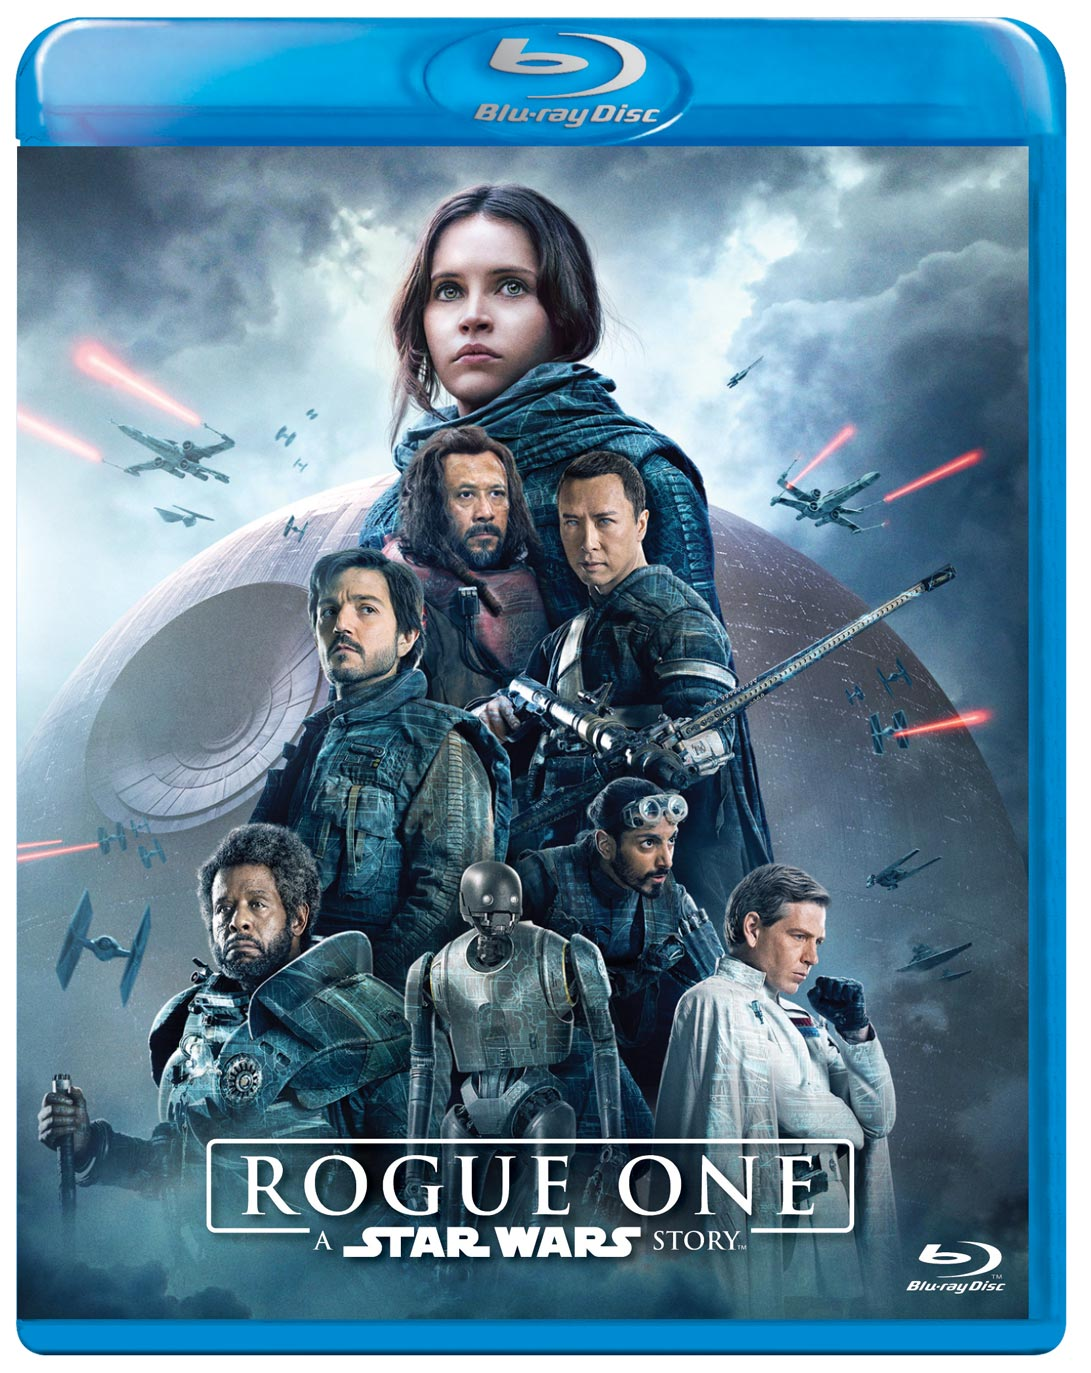 Star Wars - Rogue One (2016)